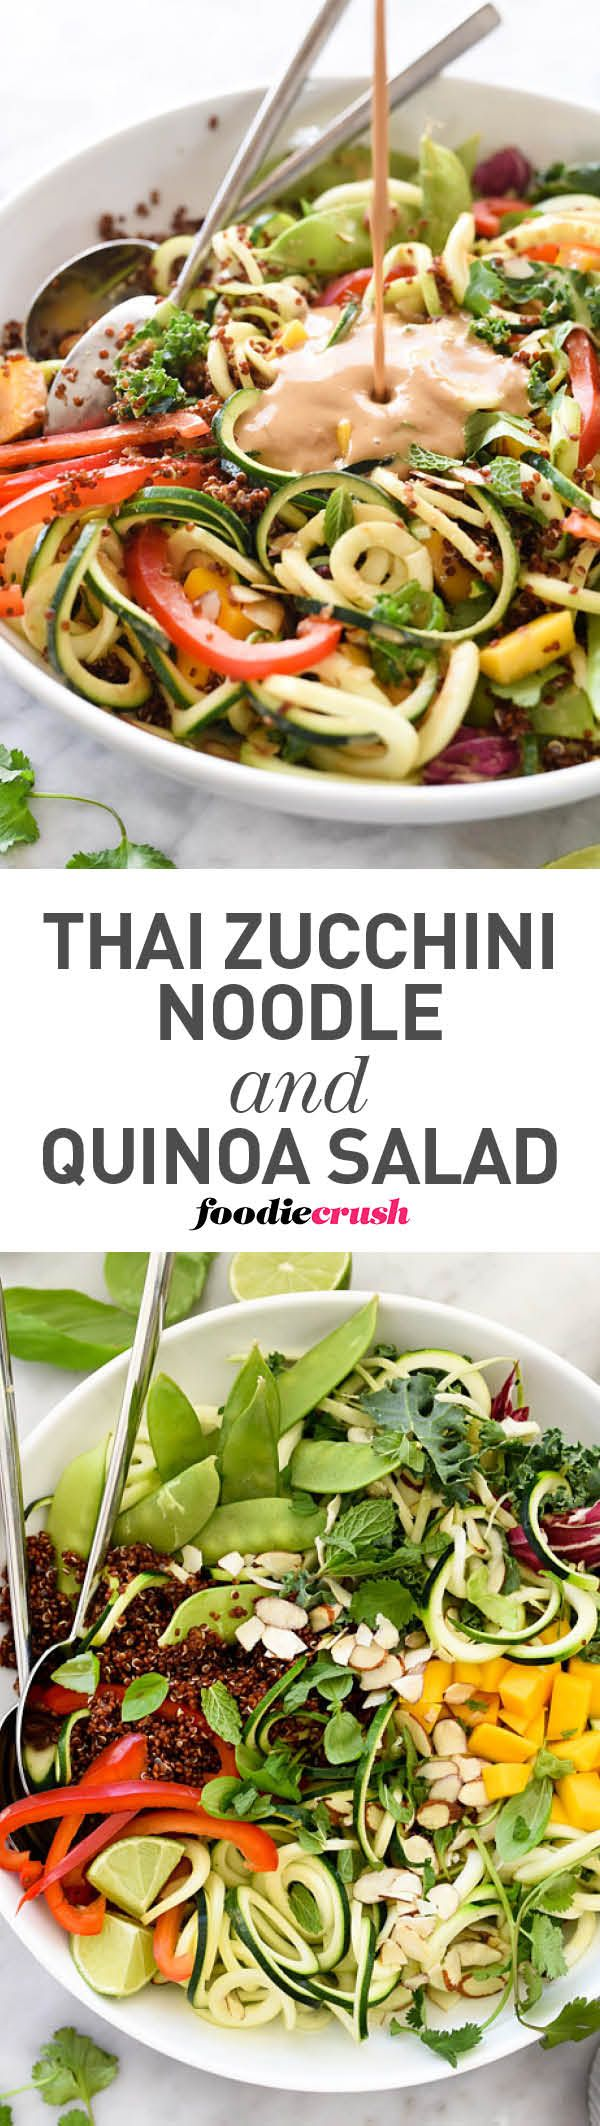 Spiralized zucchini is the base of this raw vegetable salad with sweet mango bites and a flavorful Thai peanut dressing | foodiecrush.com